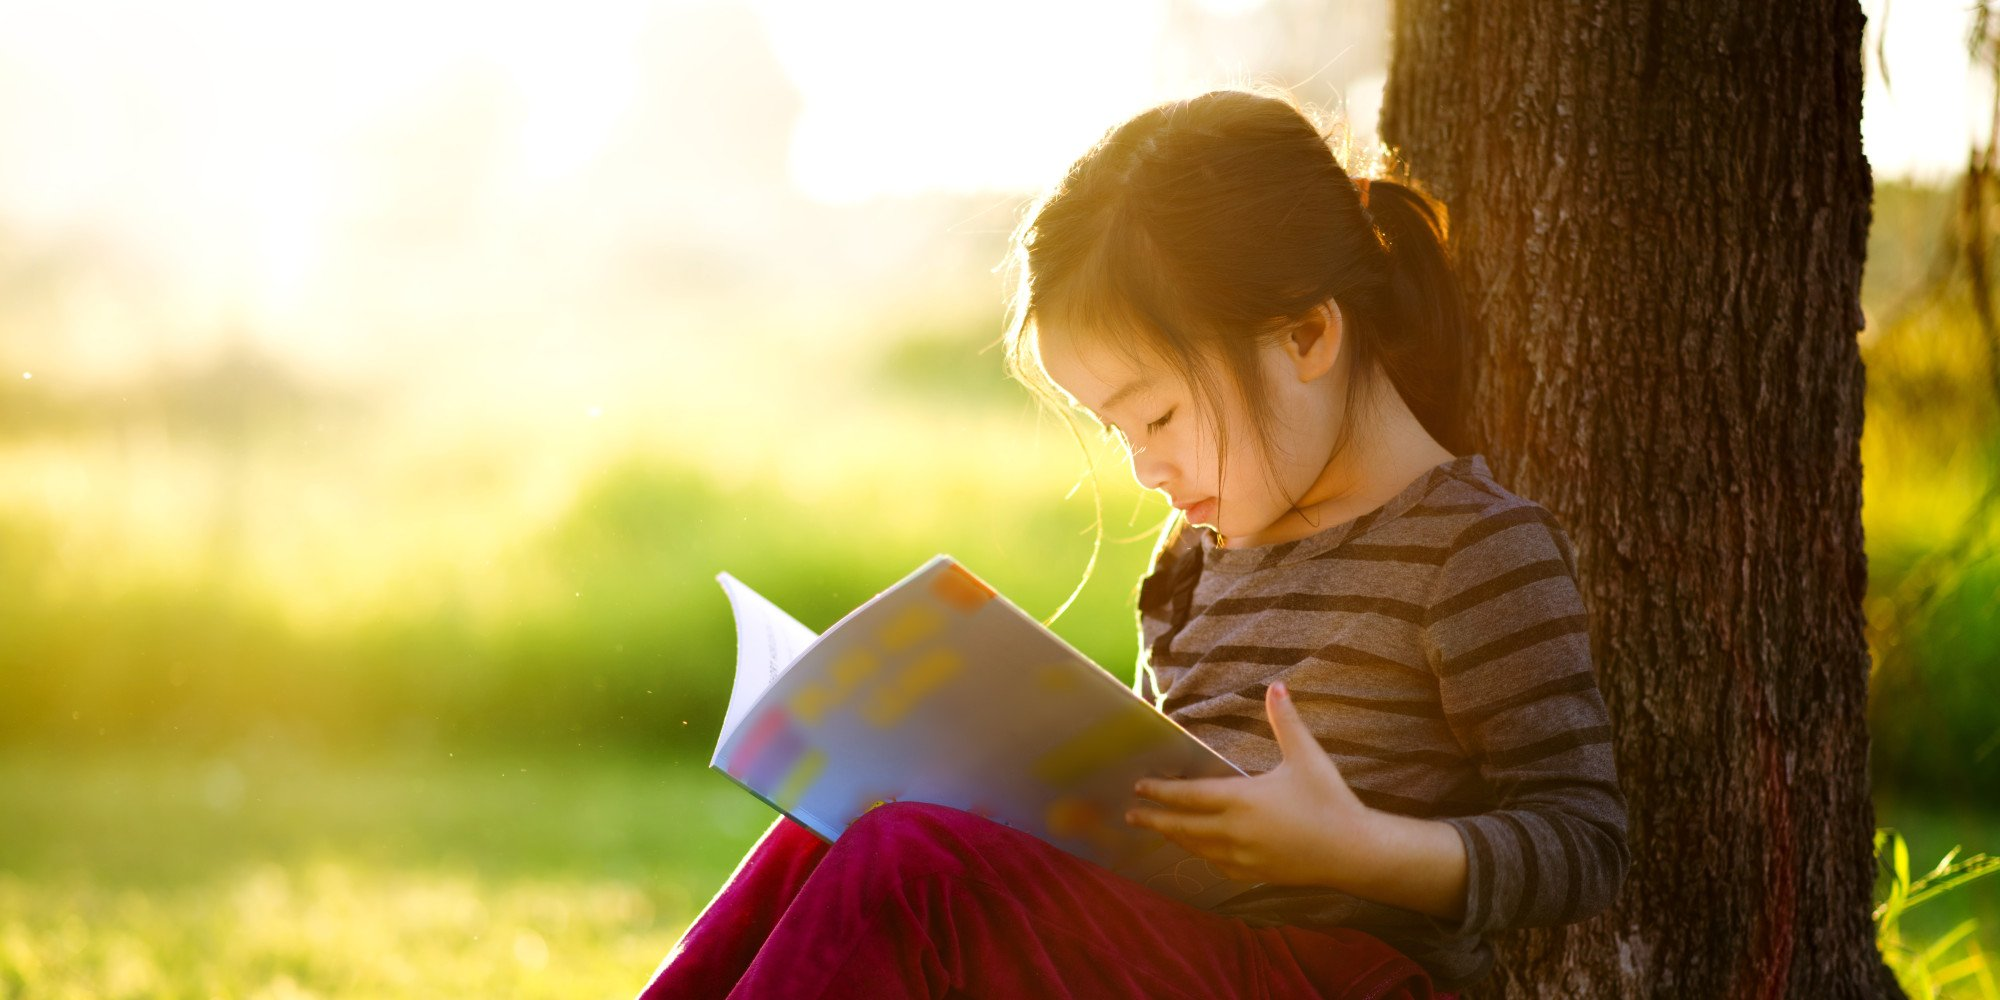 beautiful child book review One child summary & study guide description one child summary & study guide includes comprehensive information and analysis to help you understand the book.